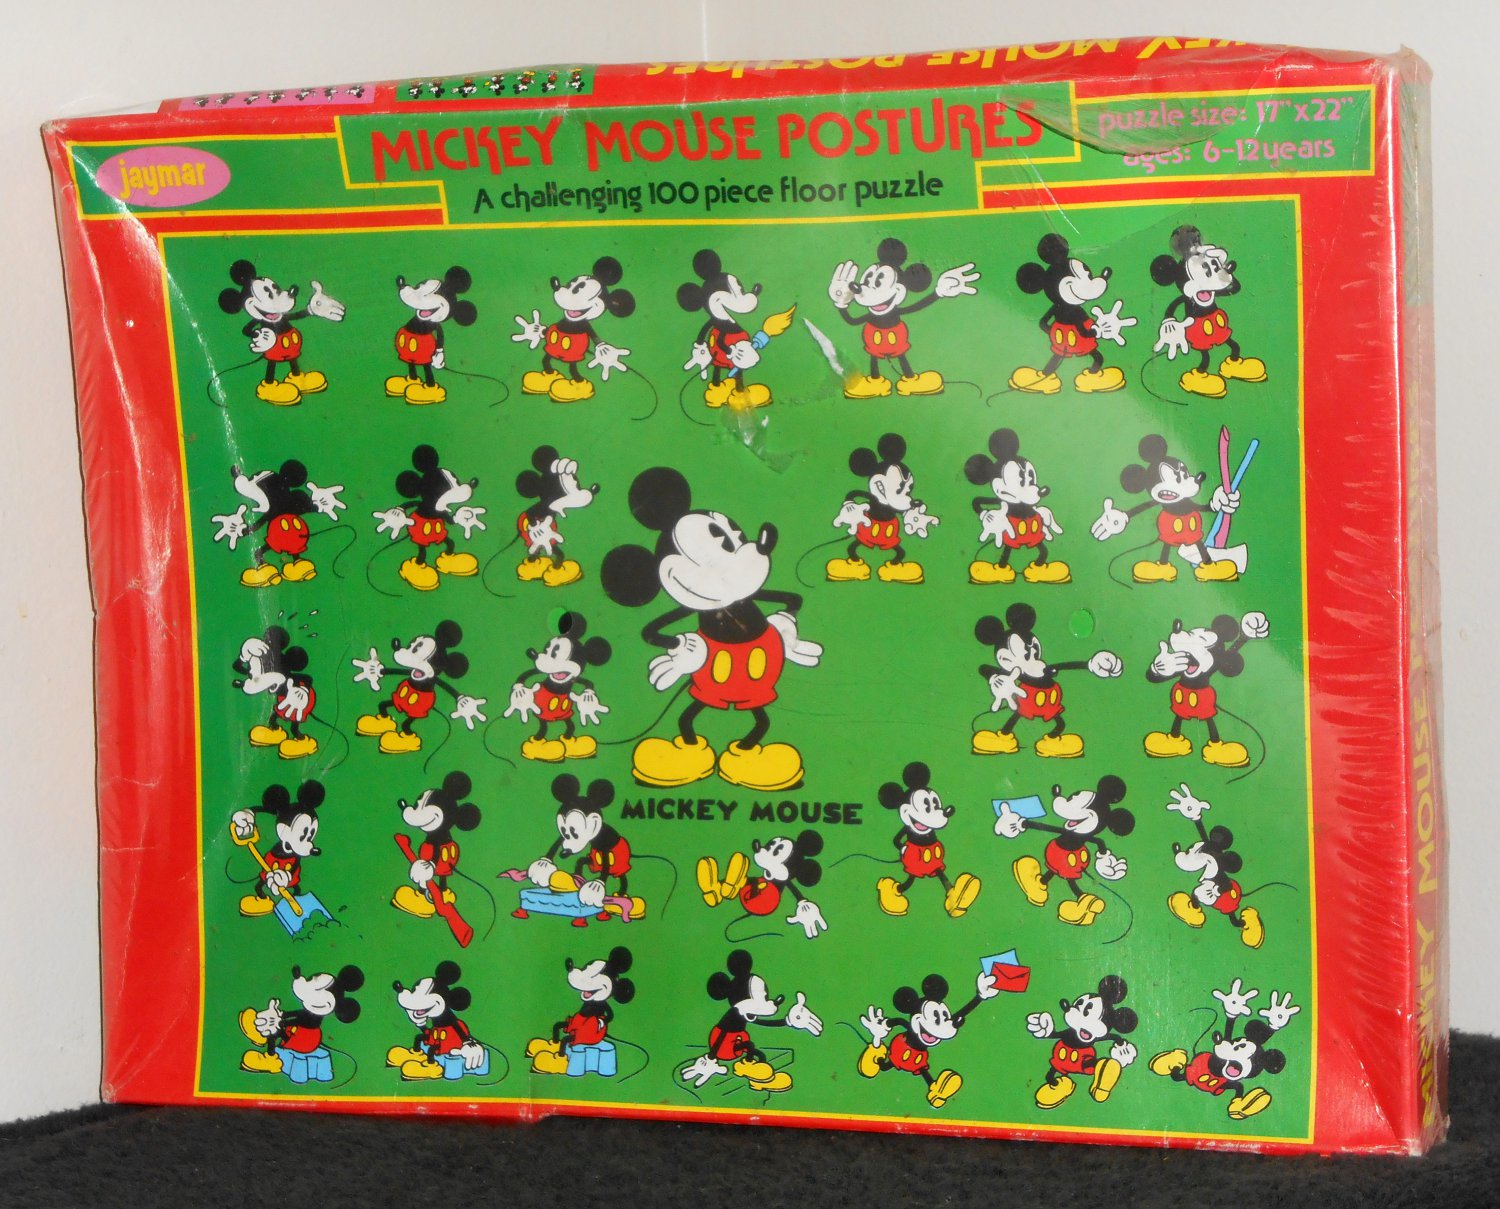 Mickey mouse postures 100 piece jigsaw floor puzzle jaymar for 100 piece floor puzzles